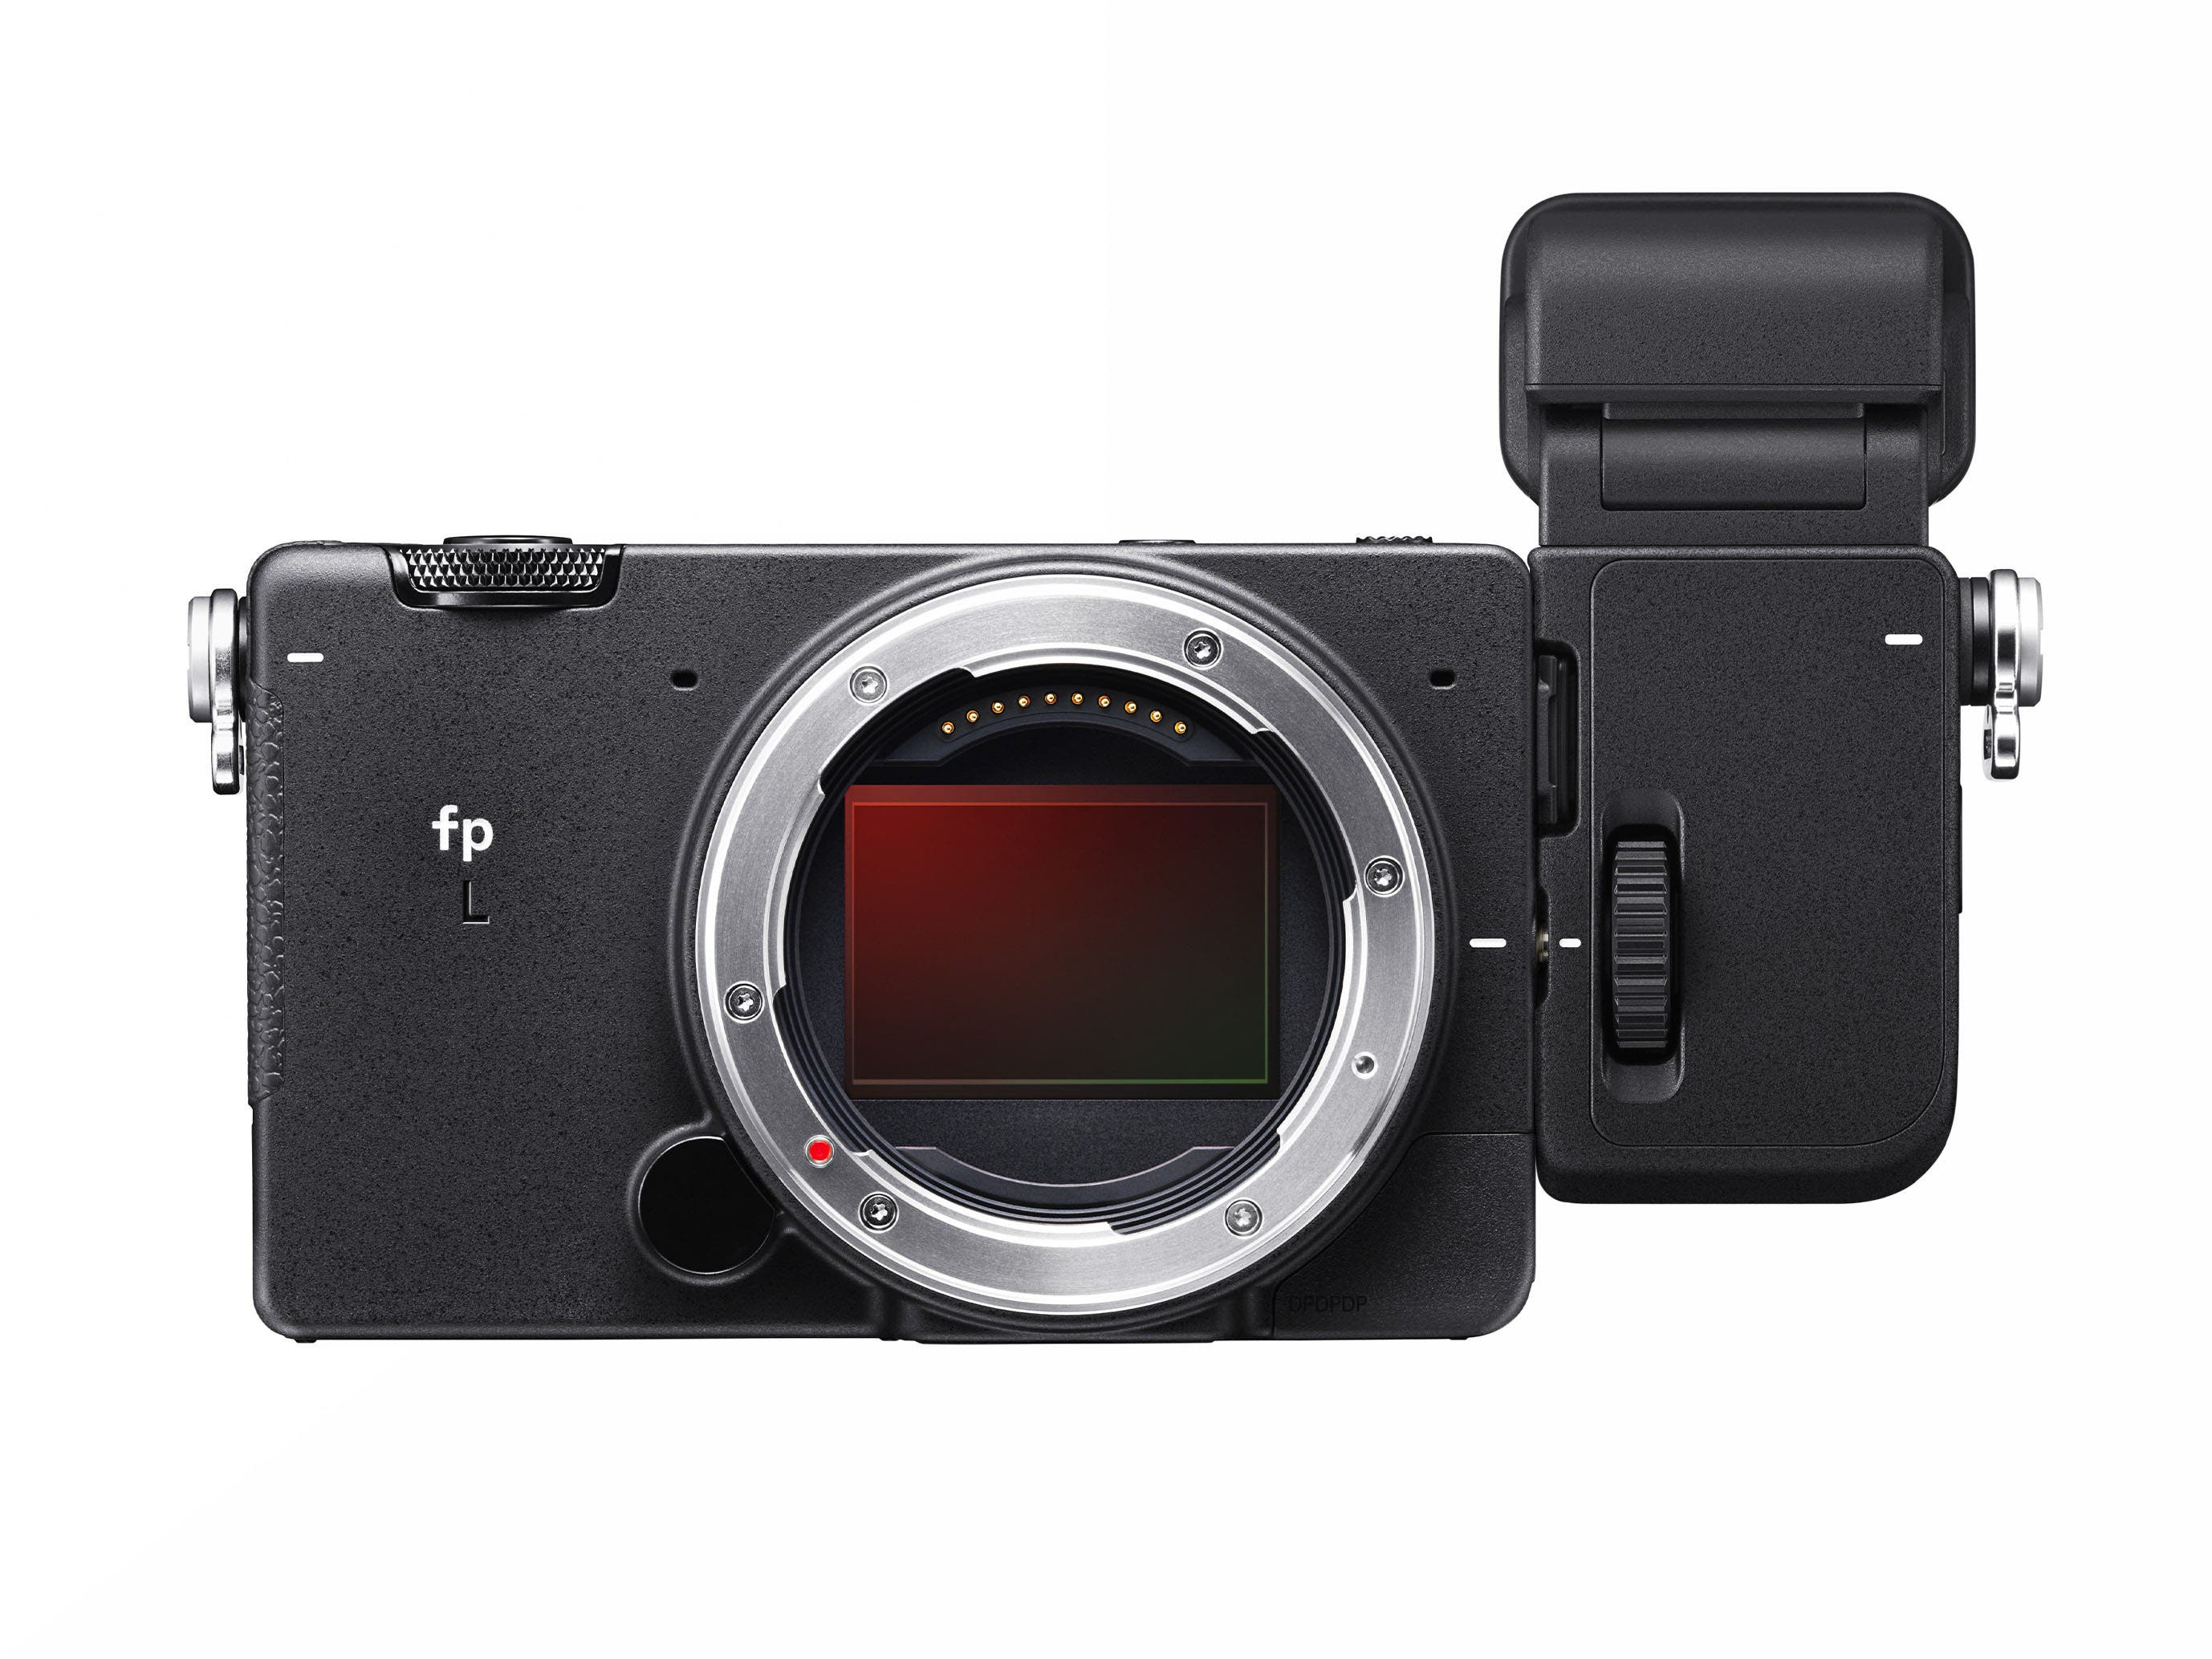 Can You Even Autofocus, Bro? The Sigma Fp L Has Big Things To Prove